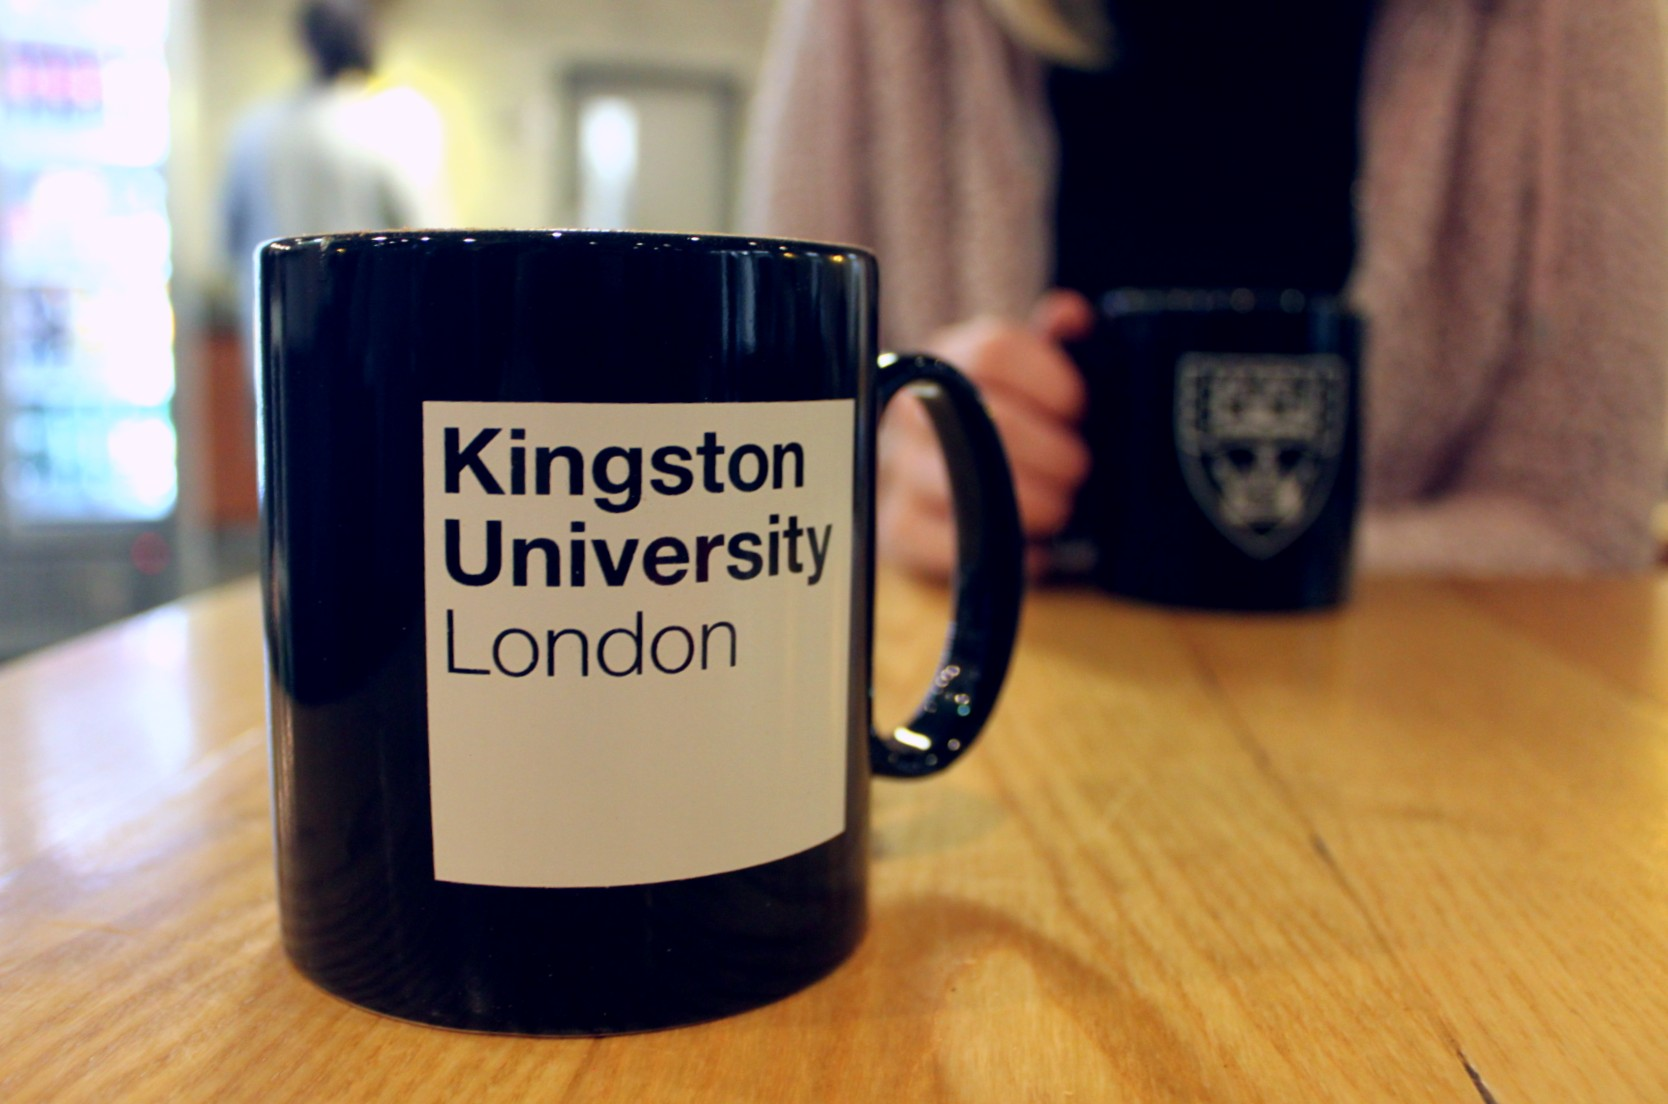 Kingston University Mug